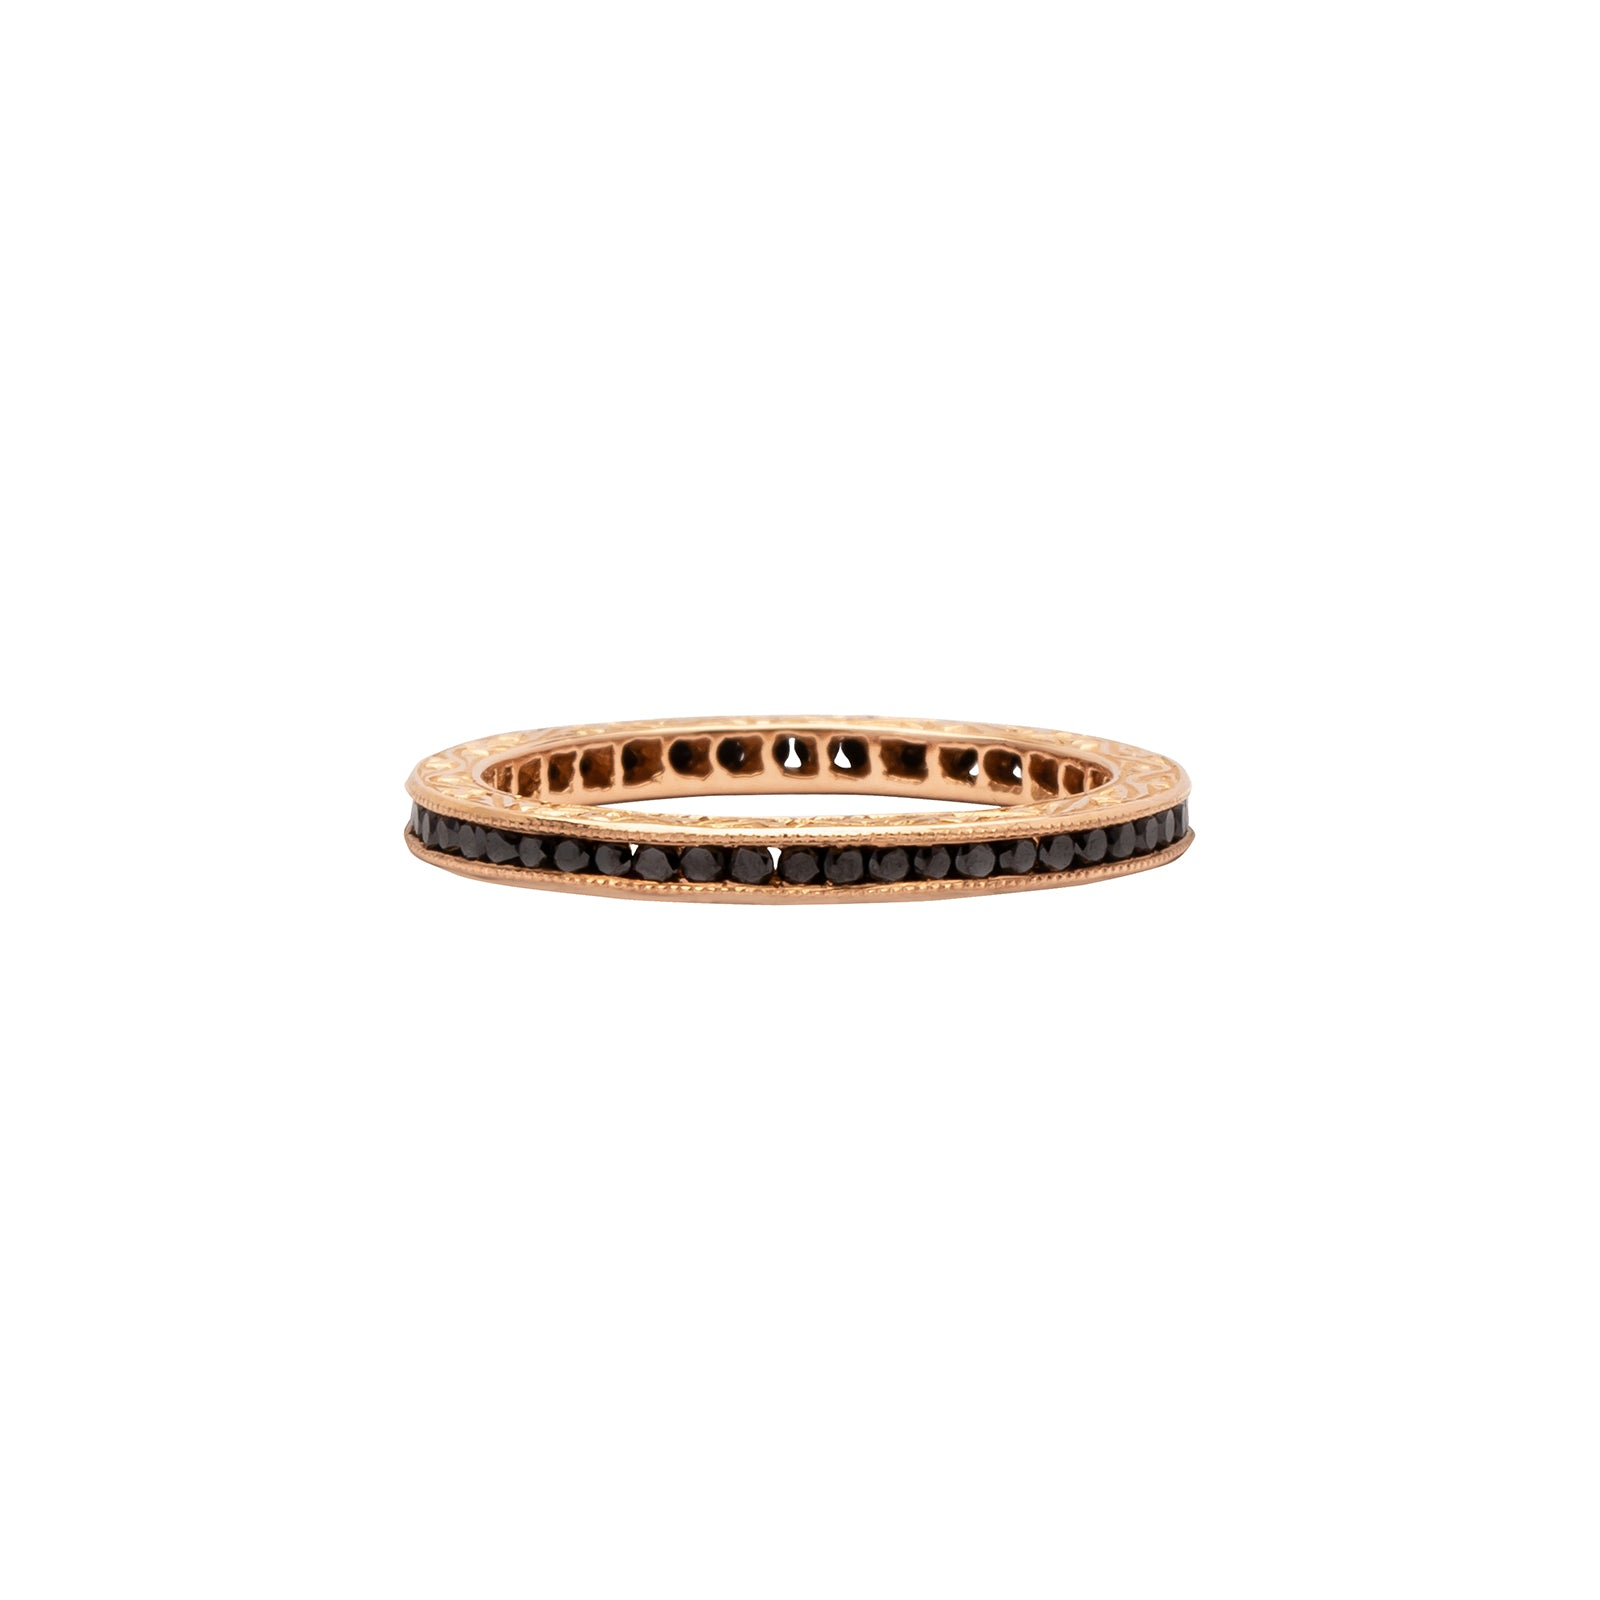 Sethi Couture Eternity Band - Black Diamond & Rose Gold - Rings - Broken English Jewelry